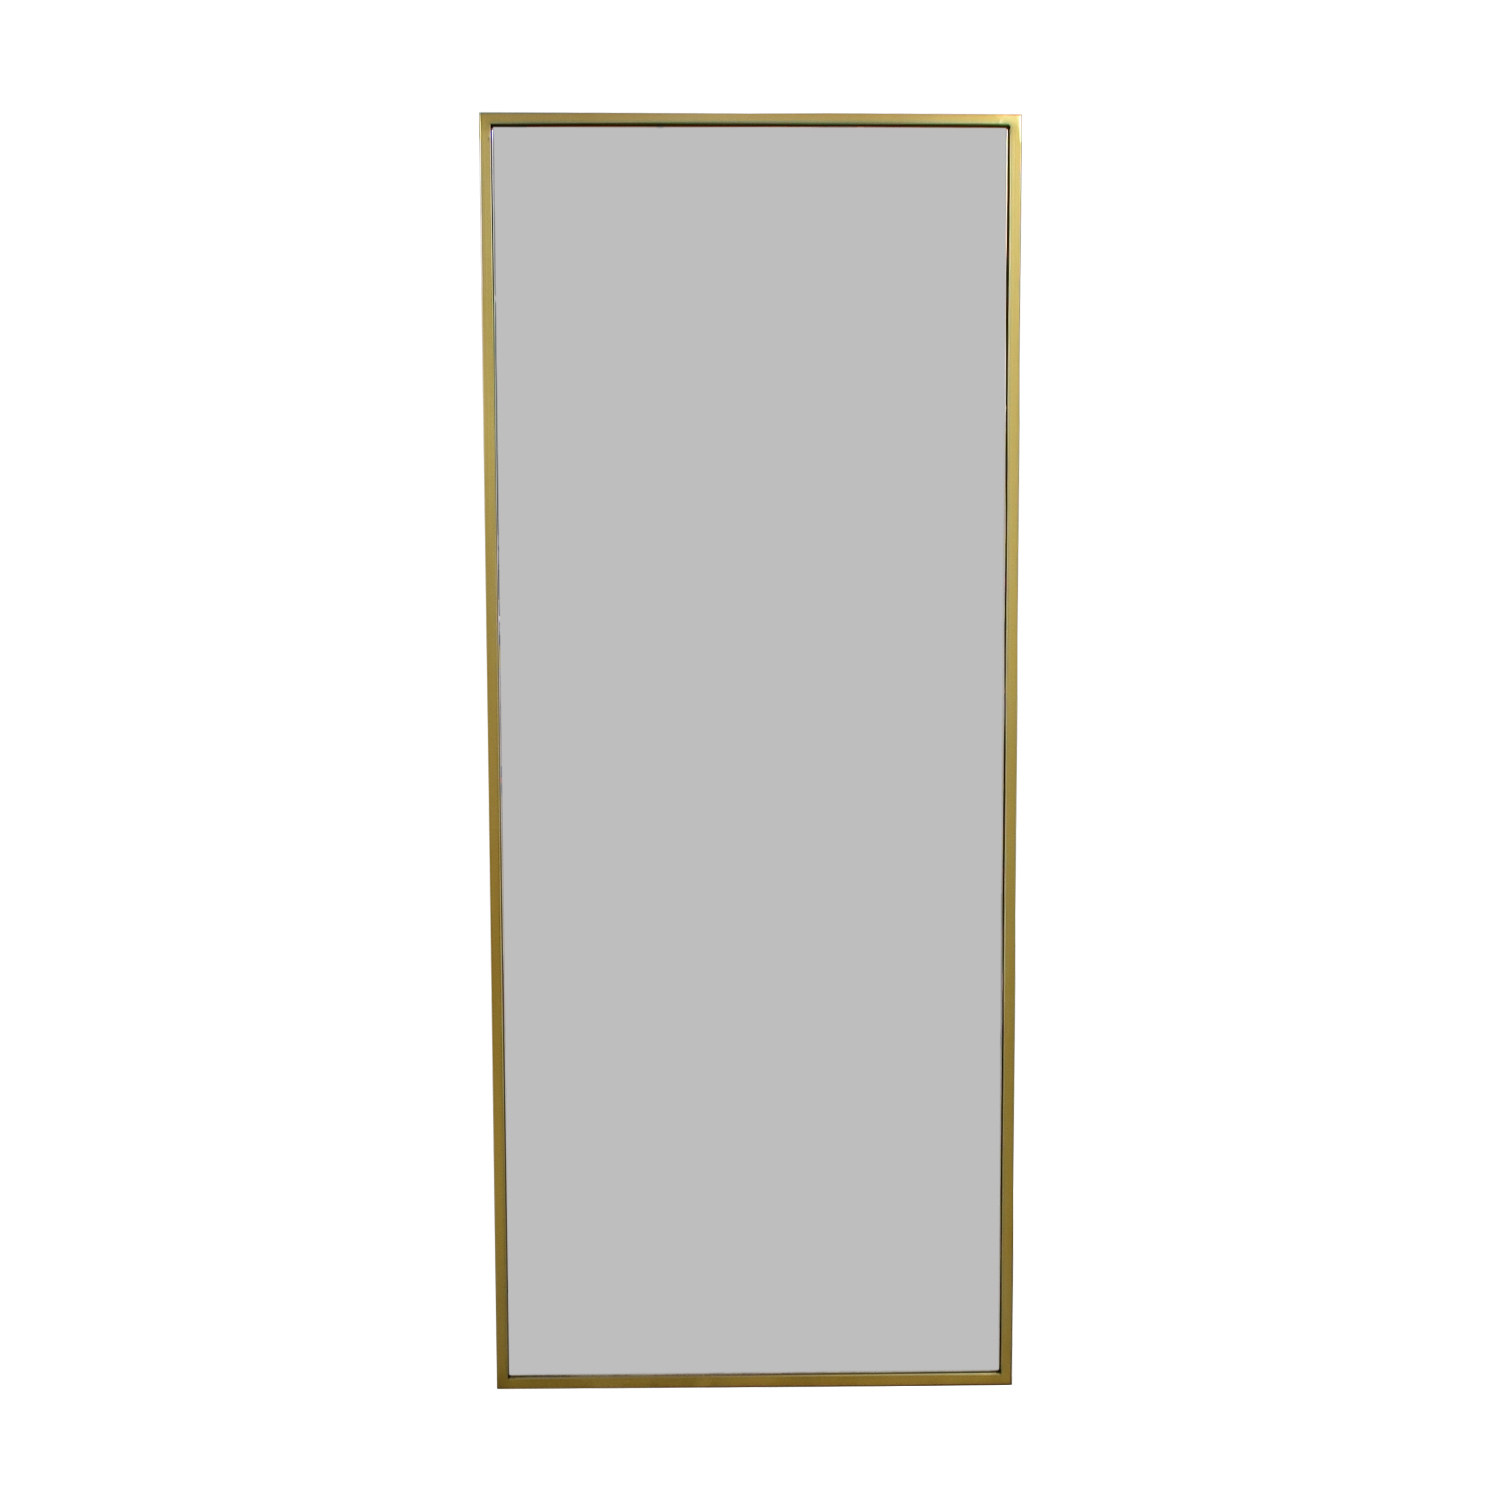 buy West Elm Metal Framed Floor Mirror West Elm Storage